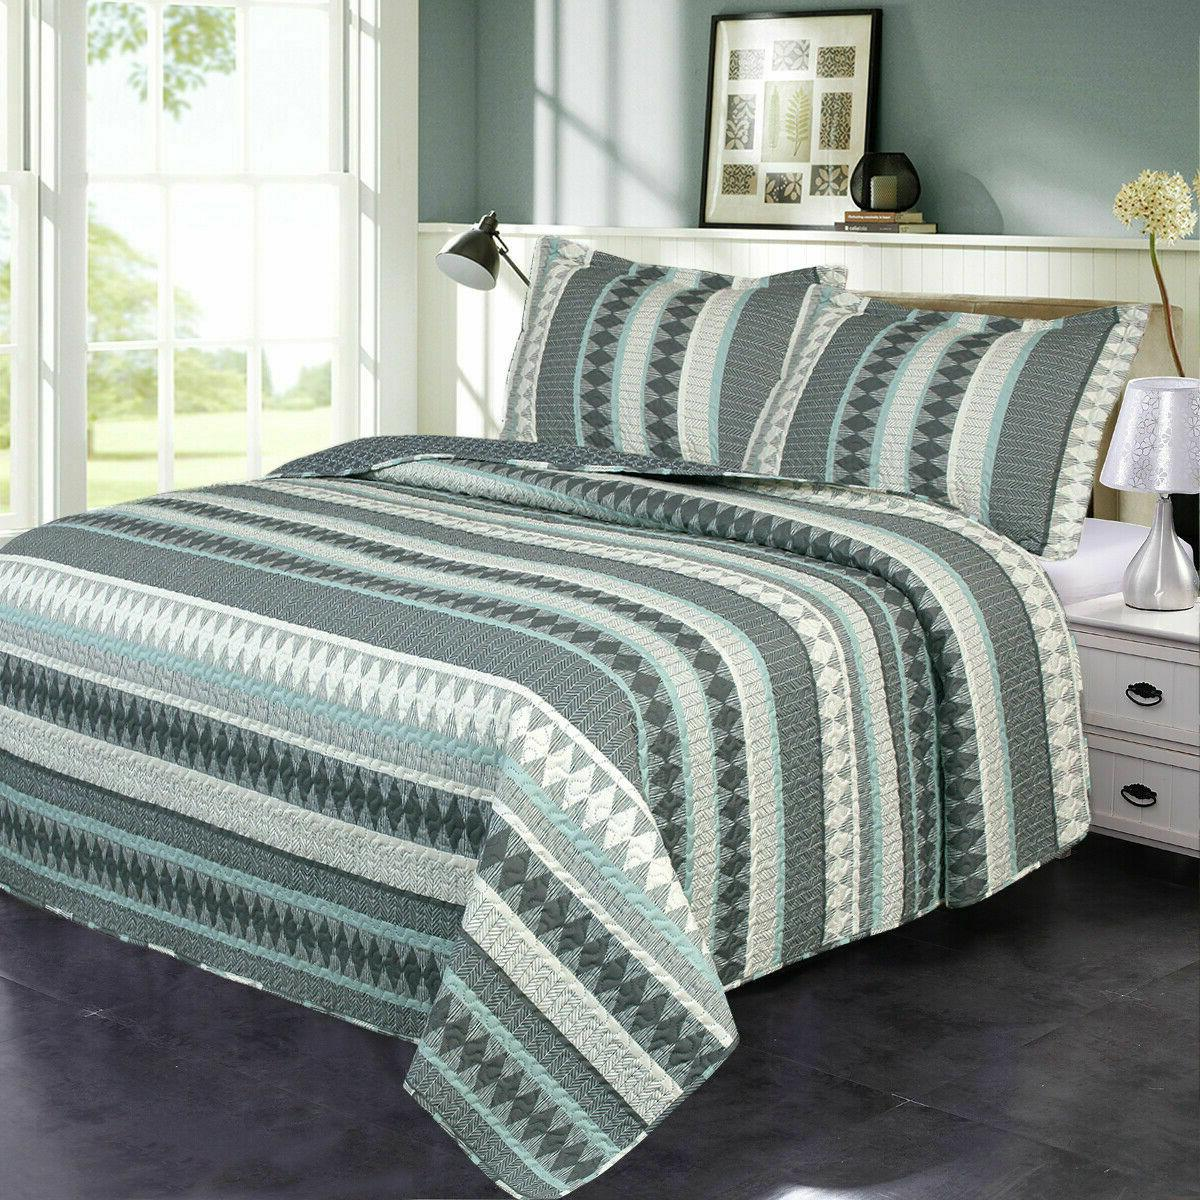 3 Quilt Set Bedspread w/ 2 shams